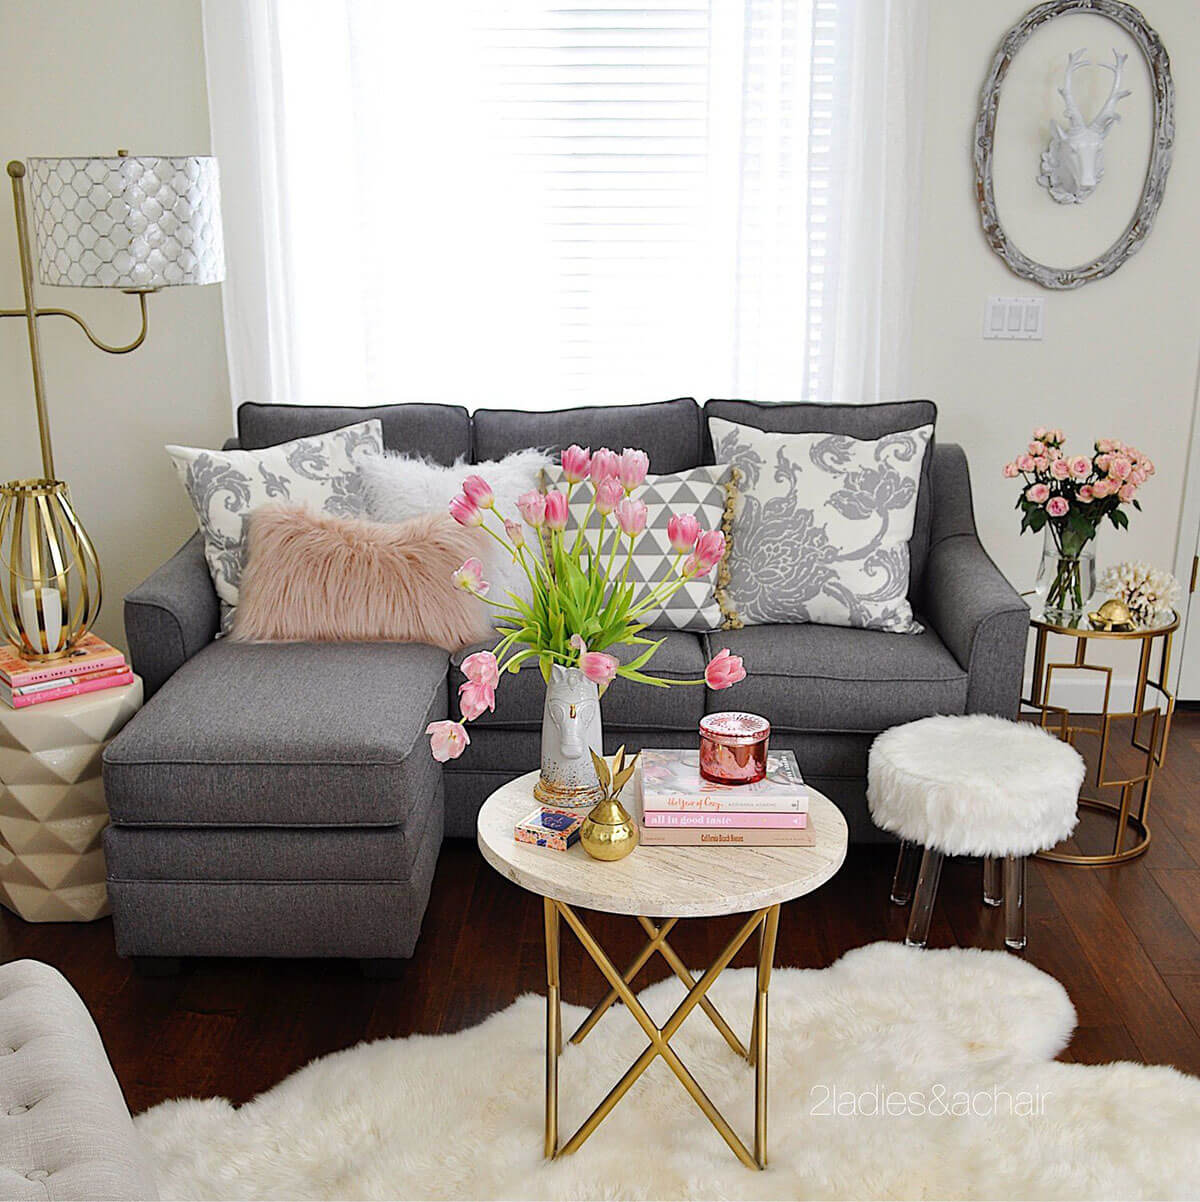 25 best small living room decor and design ideas for 2019 - How to decorate a small living room space ...